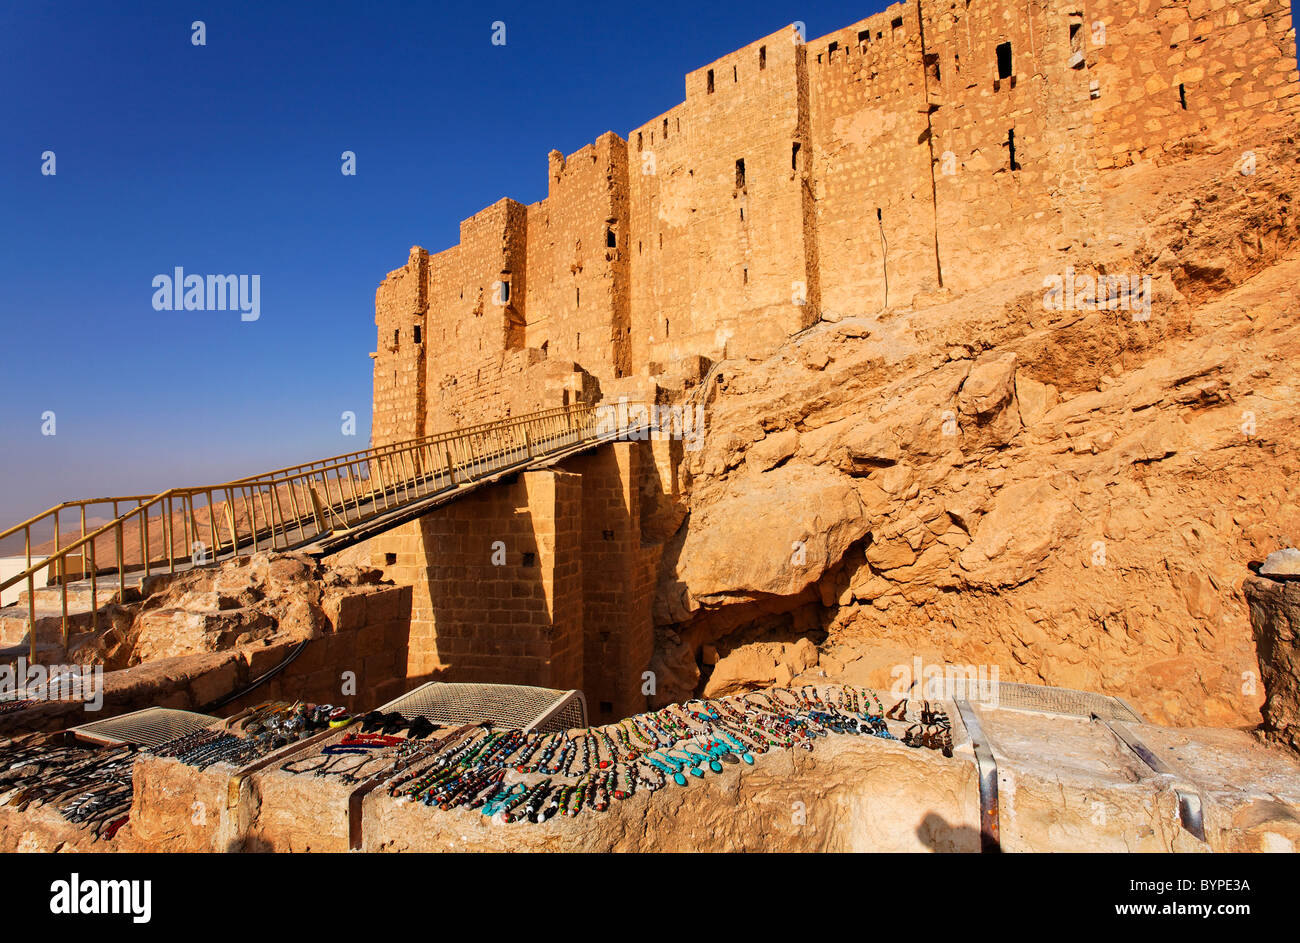 Souvenir jewellery for sale in front of Qalaat Ibn Maan, the Arab Castle, at Palmyra, Syria - Stock Image